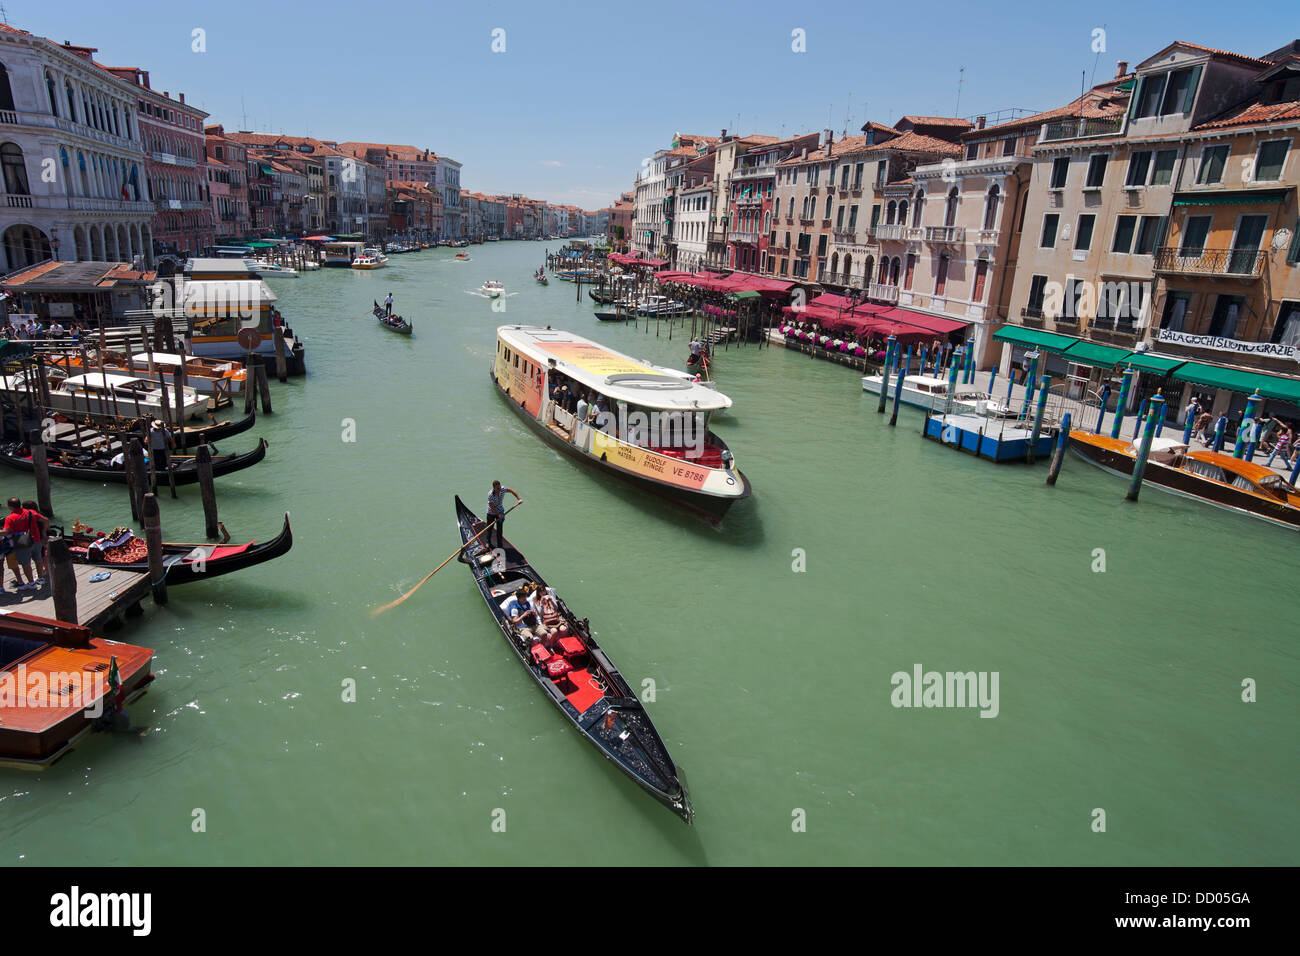 Grand Canal (Canale Grande) seen from The Rialto Bridge (Ponte di Rialto), Venice, Italy - Stock Image